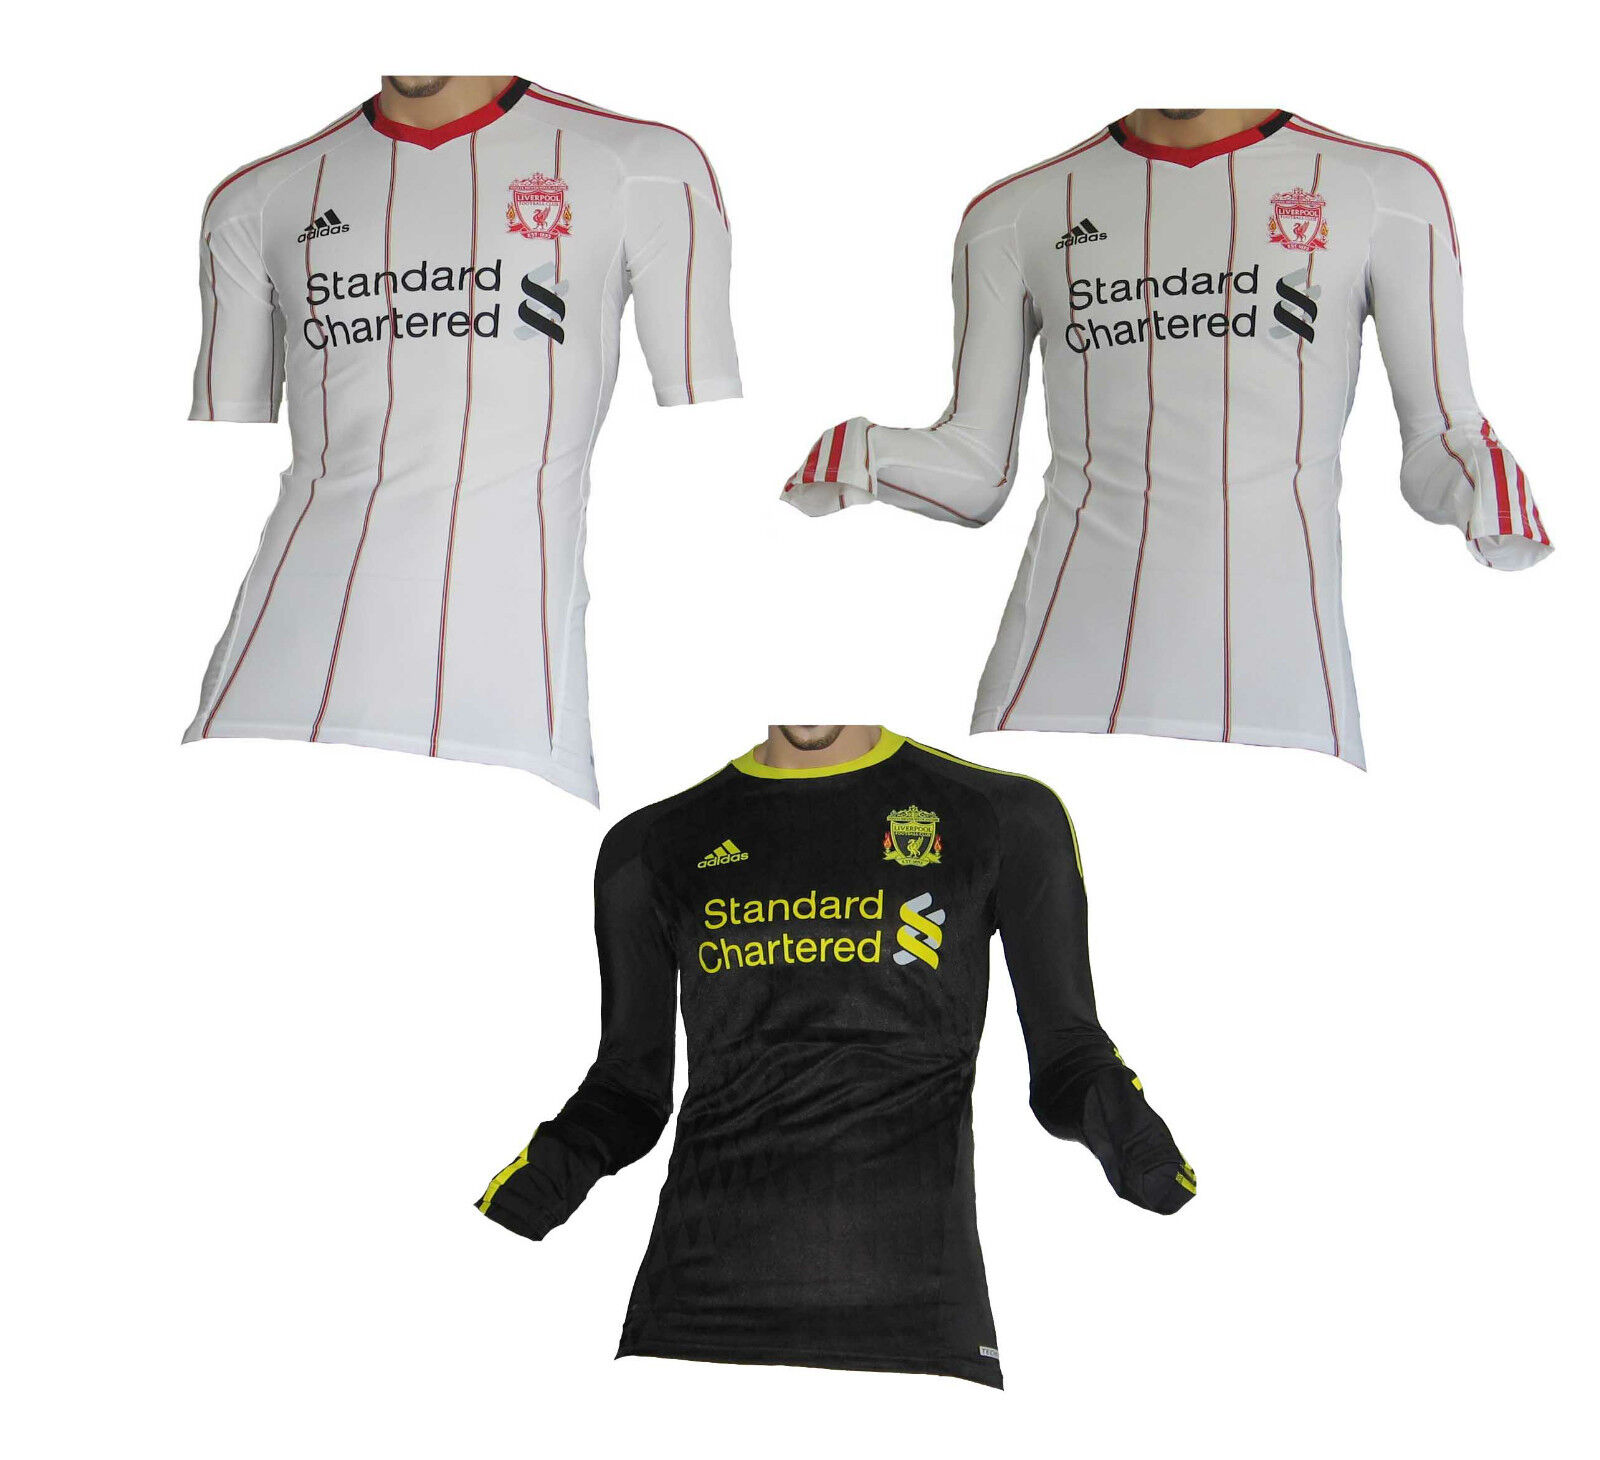 FC Liverpool Trikot TechFit Player Issue 2010 11 Adidas Adidas Adidas 146fcd